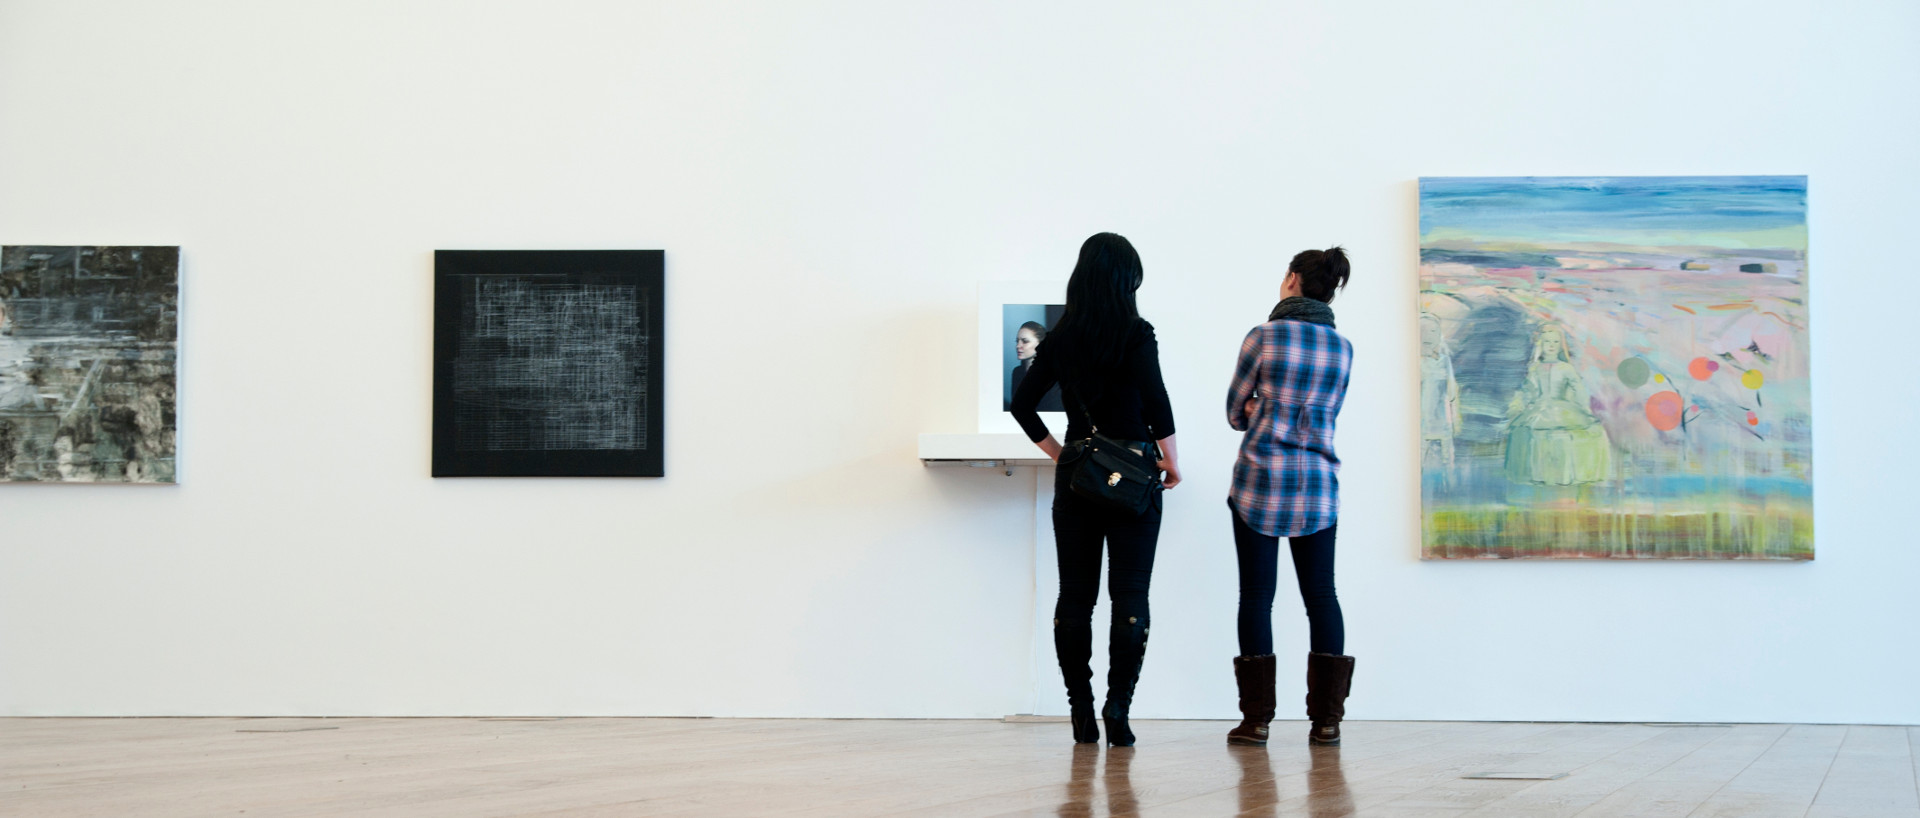 Ladies looking at a panting in an art gallery in Dublin